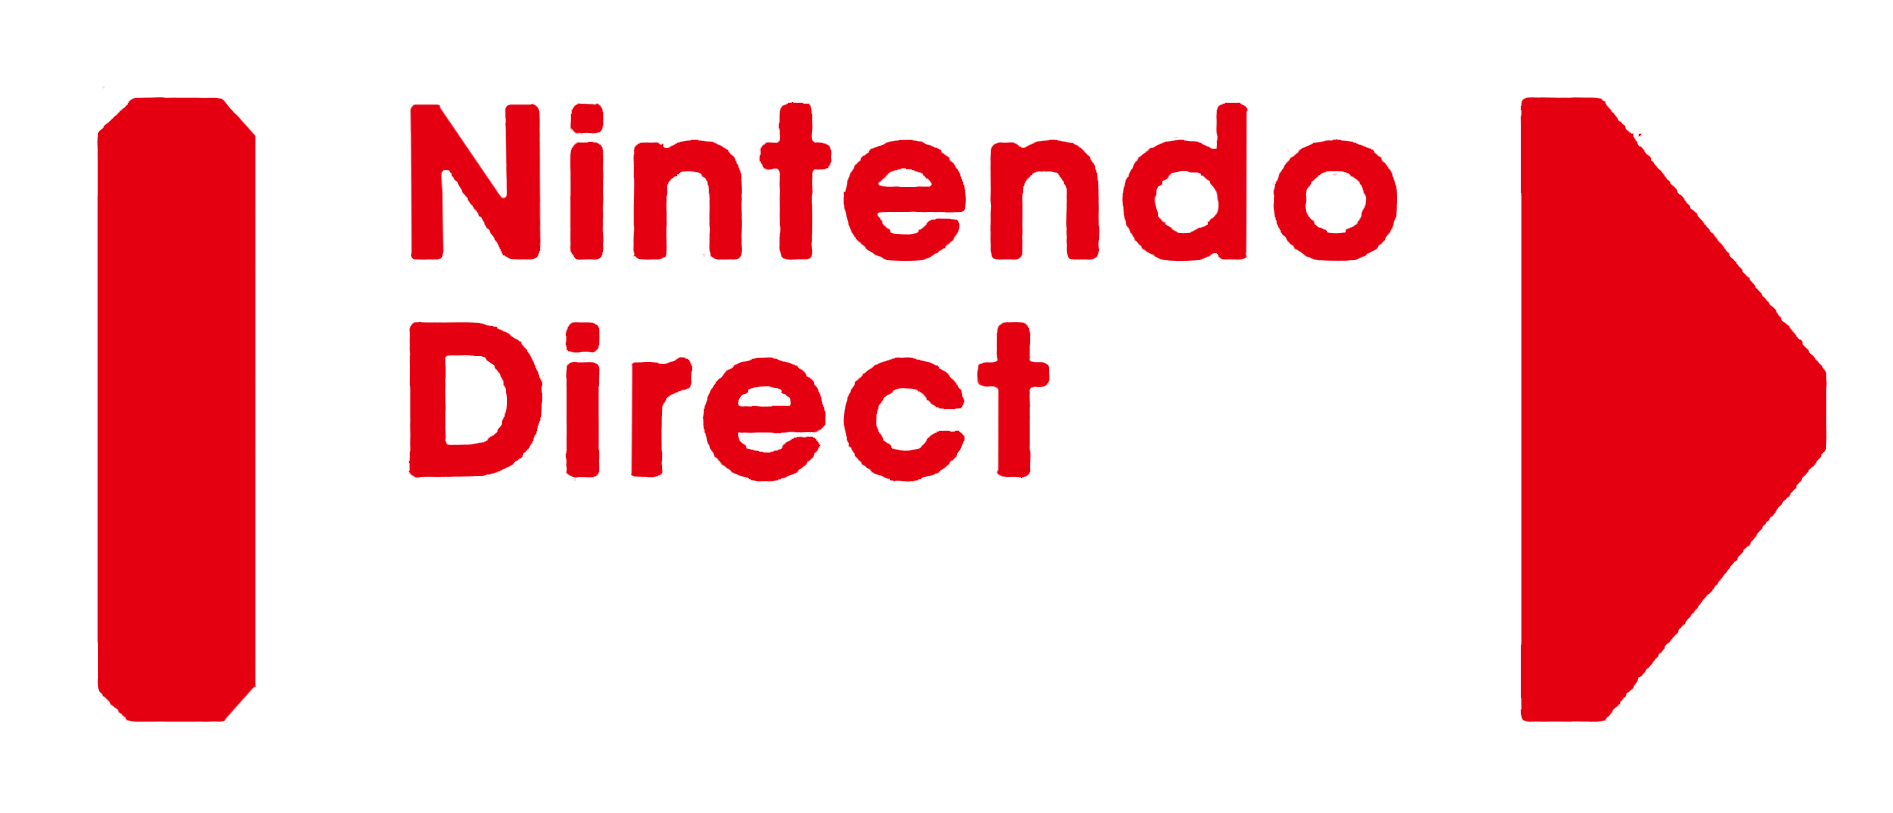 nintendo direct - photo #8